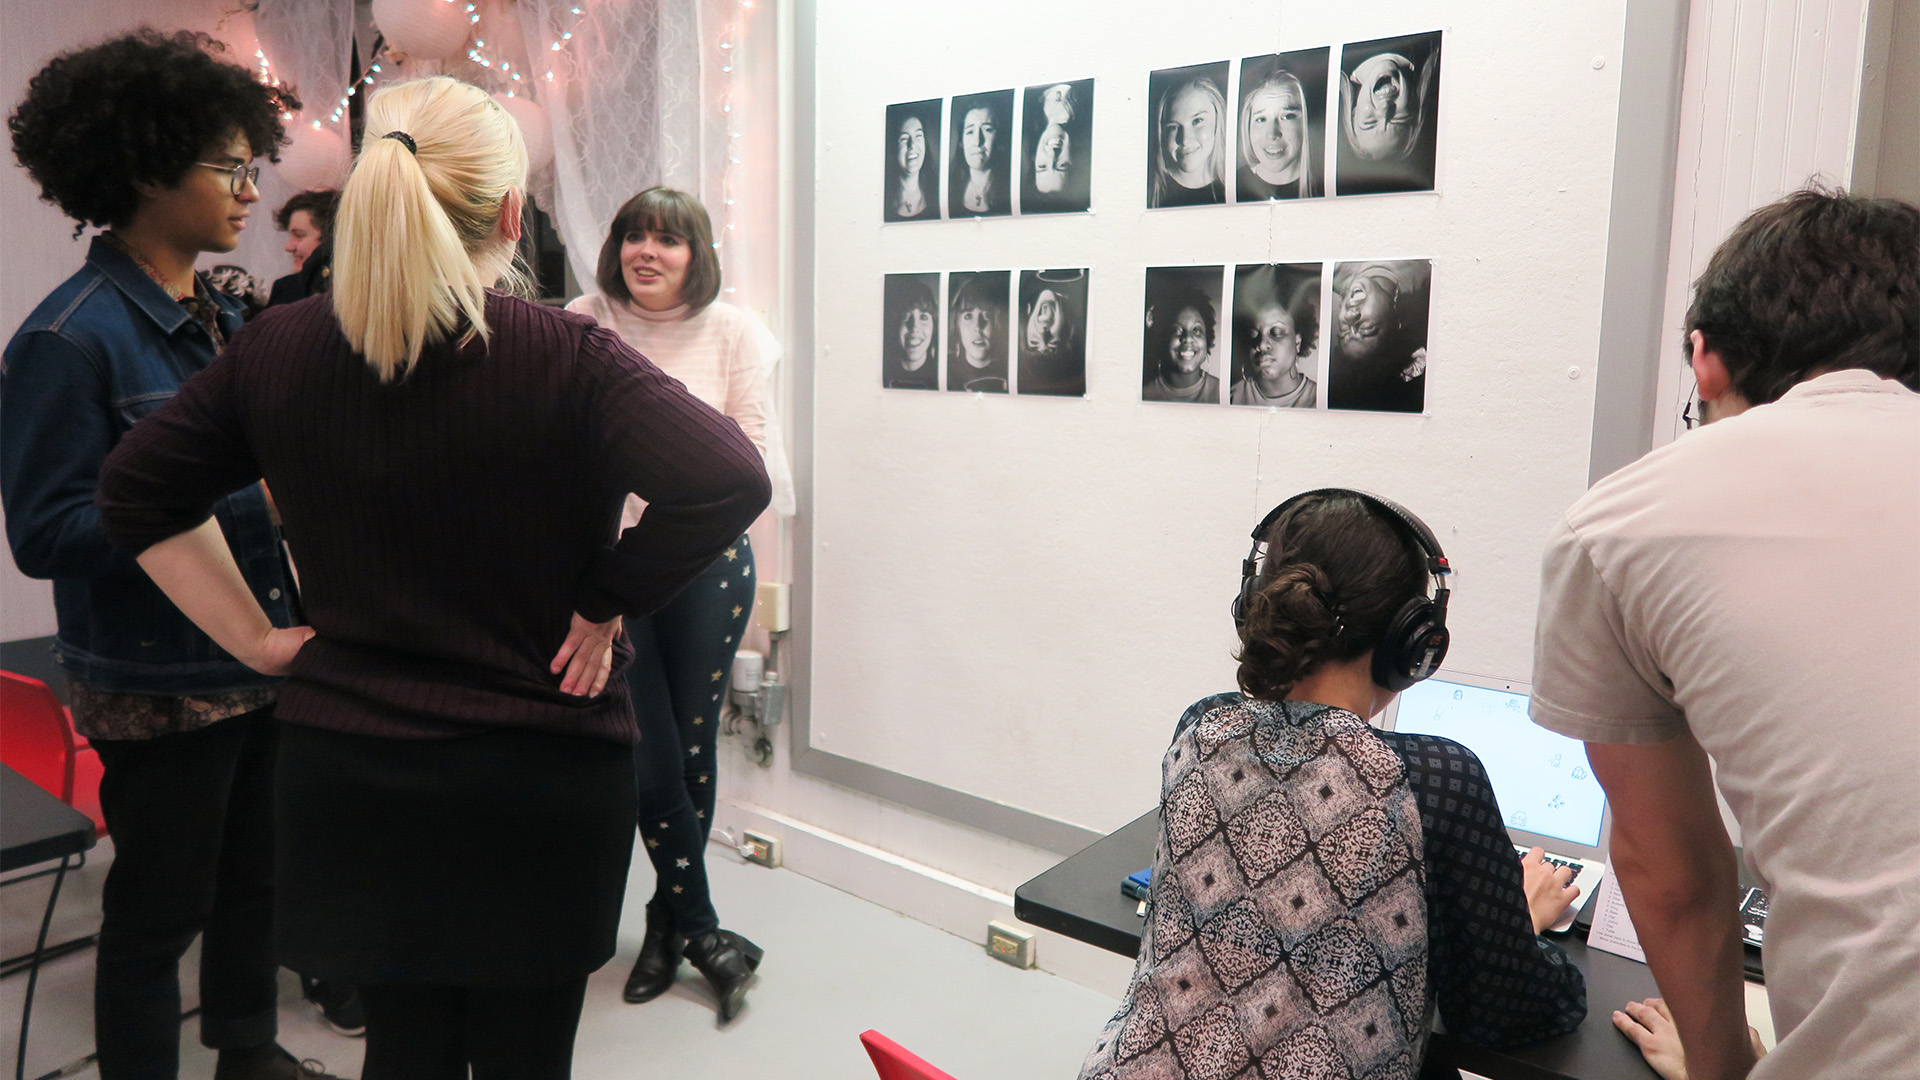 Group of people looking at an exhibition of photographs